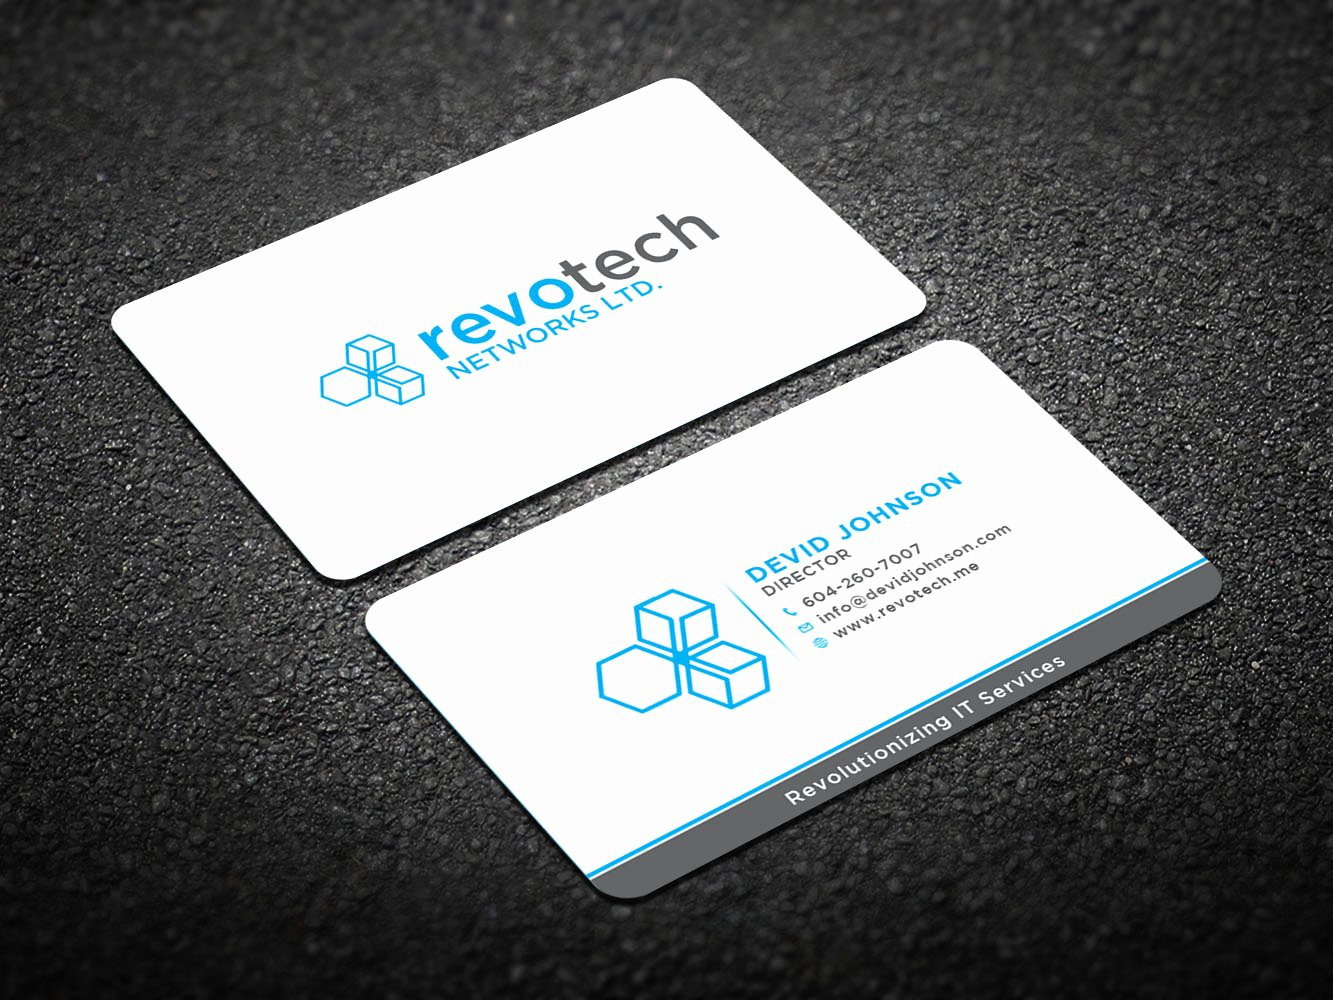 Information Technology Business Cards Inspirational Modern Bold Information Technology Business Card Design